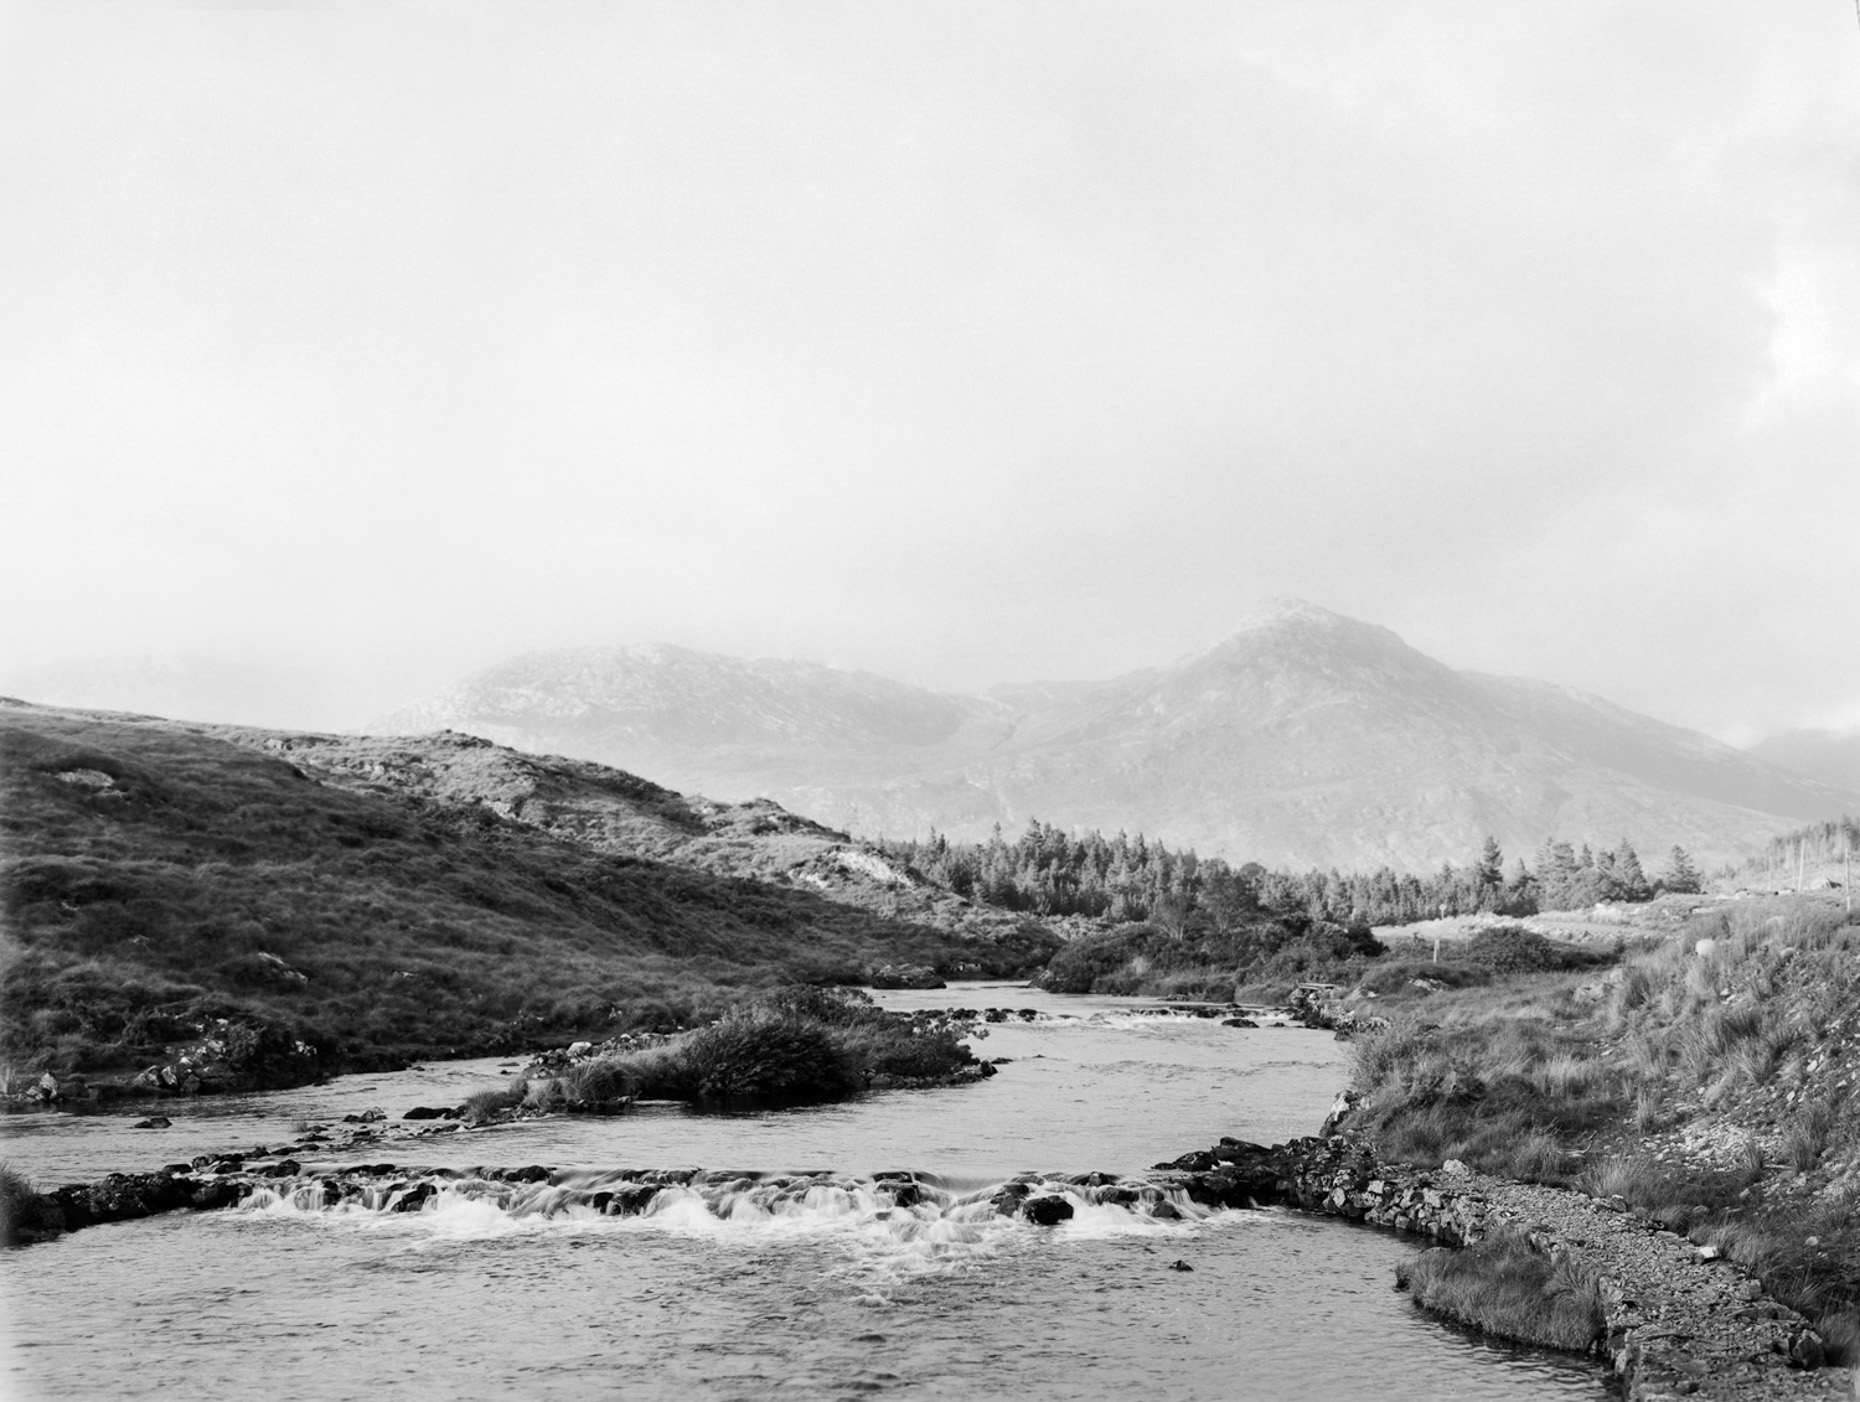 Axel Bernstorff, Collectable limited edition fine art photographic prints. The view to Twelve Bens, and Ballynahinch Castle, Connemara, Ireland. Collectable limited edition fine art prints.